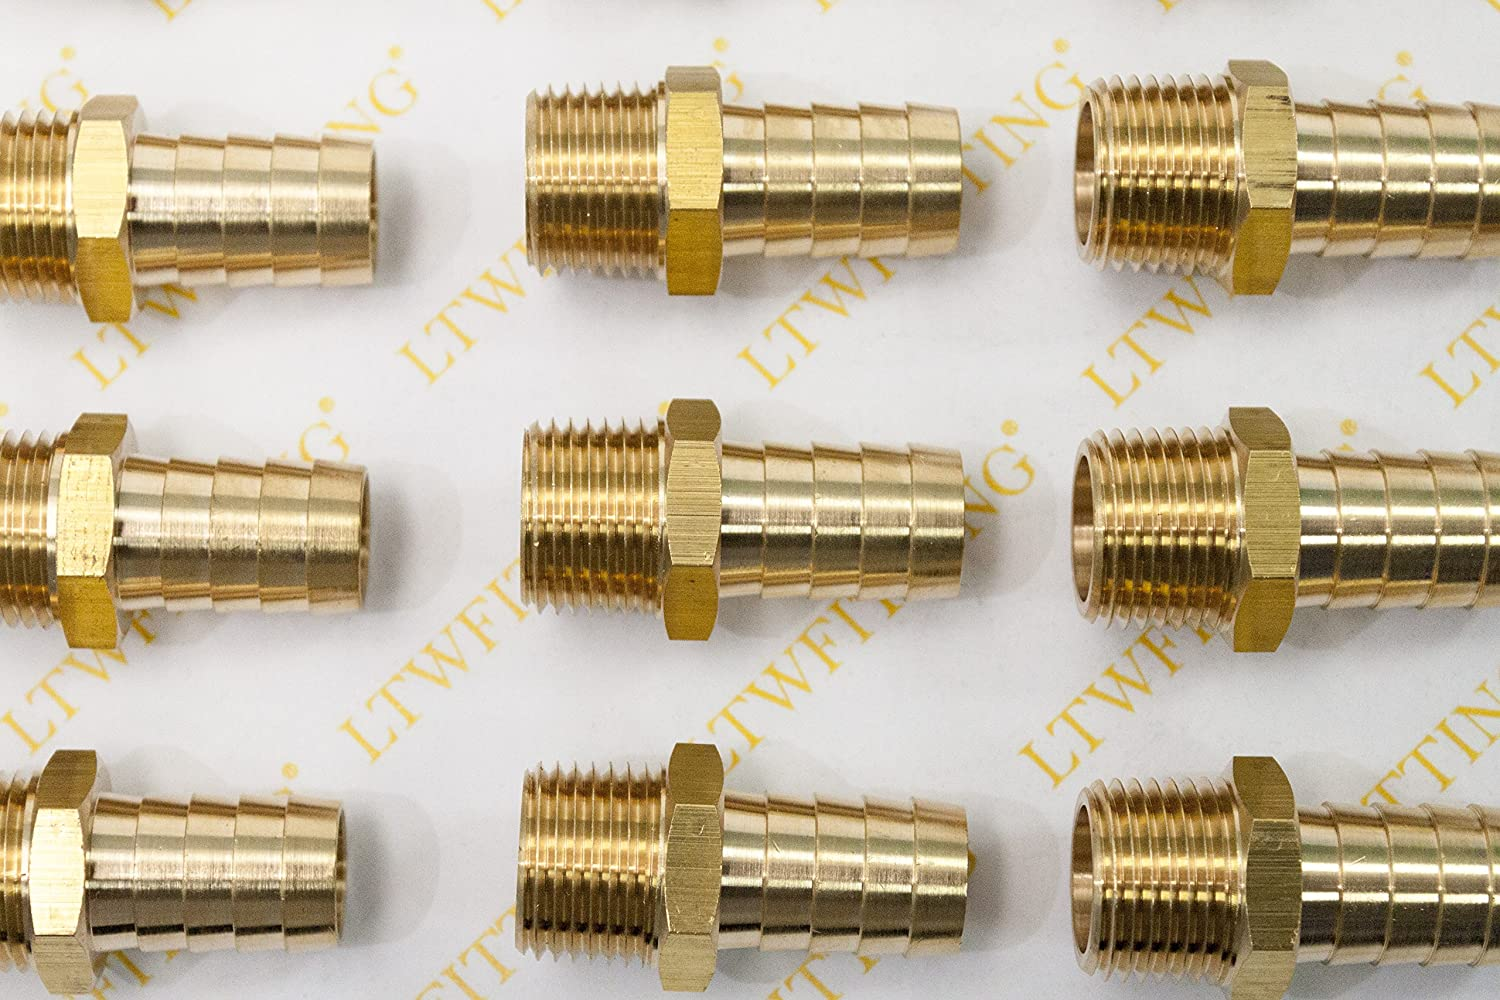 LTWFITTING Brass Barb Fitting Coupler//Connector 5//8-Inch Hose ID x 1//2-Inch Male NPT Pack of 20